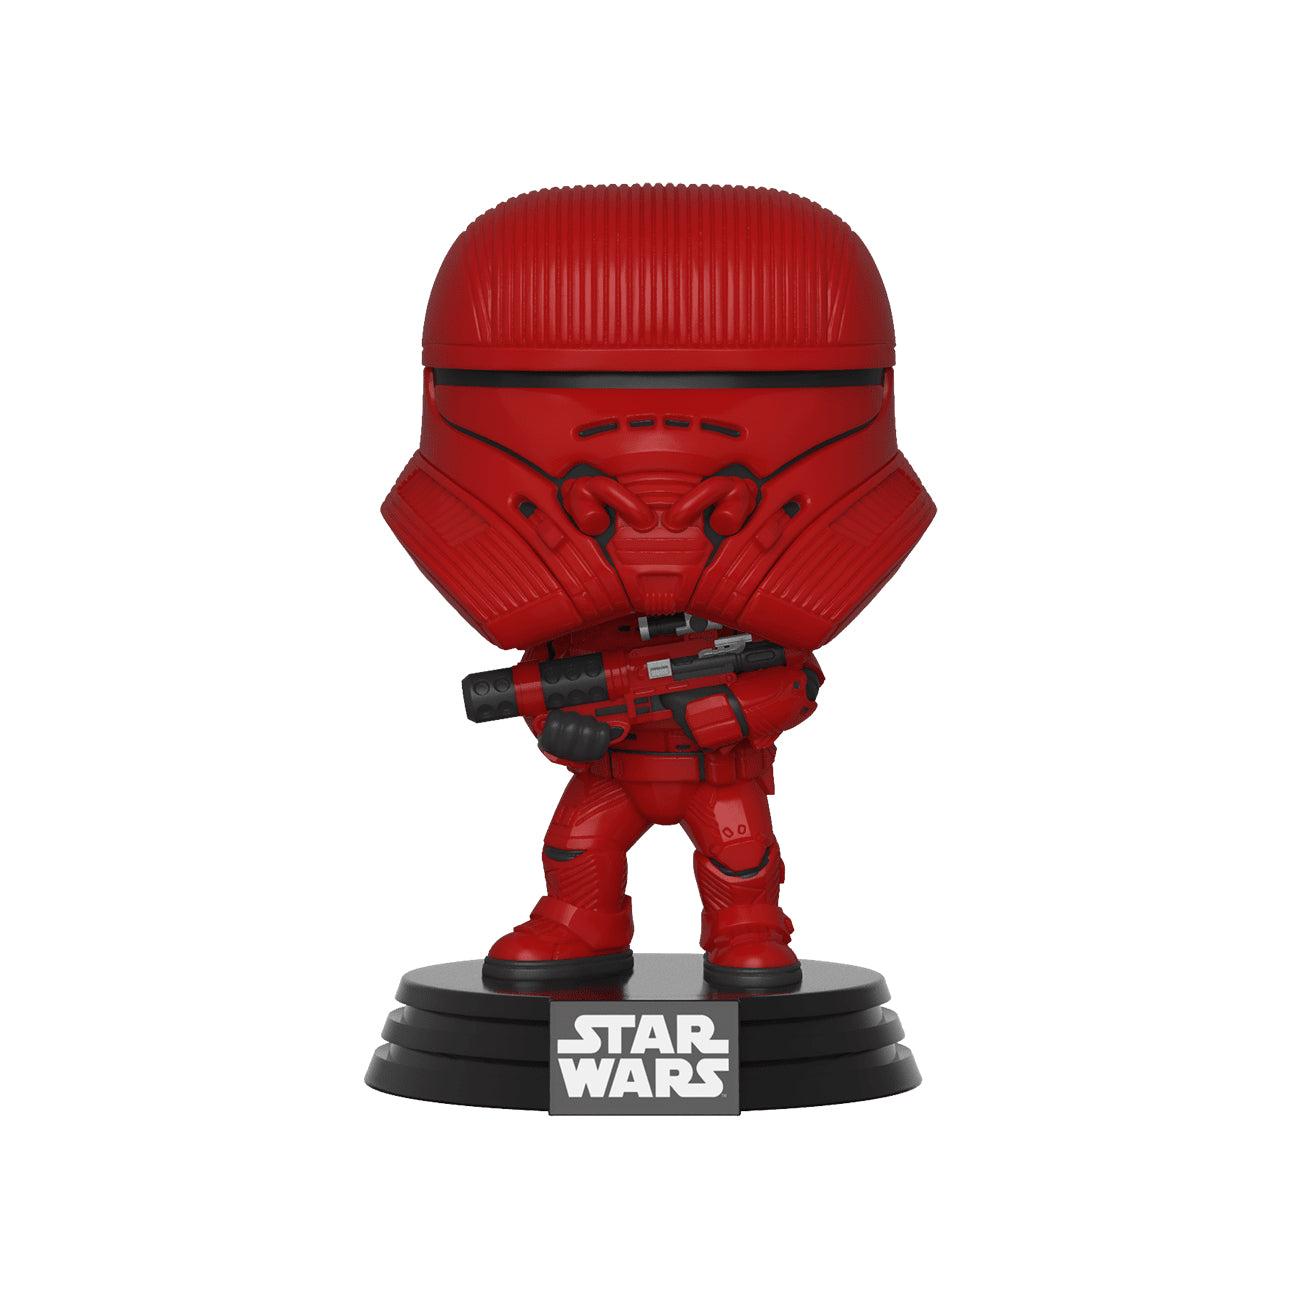 Star Wars The Rise of Skywalker Sith Jet Trooper